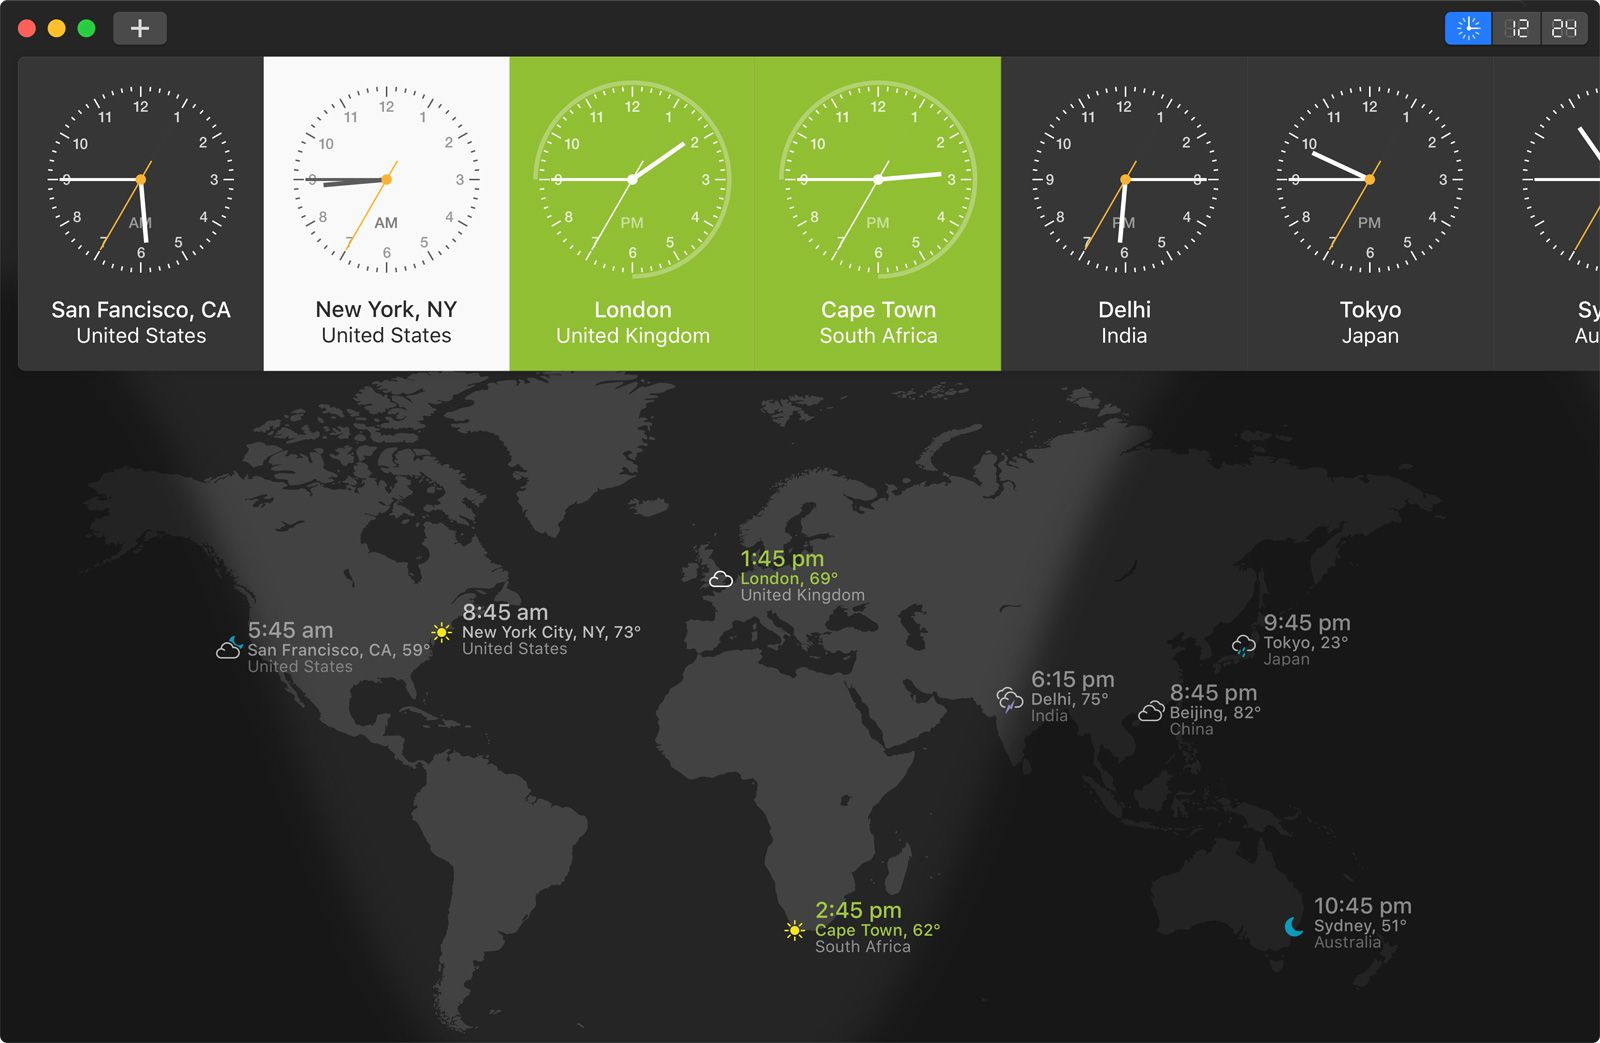 World clock pro a fancy international time zone converter a simple fast and fun app to plan and organize across timezones world clock pro is a fancy international time zone gumiabroncs Image collections